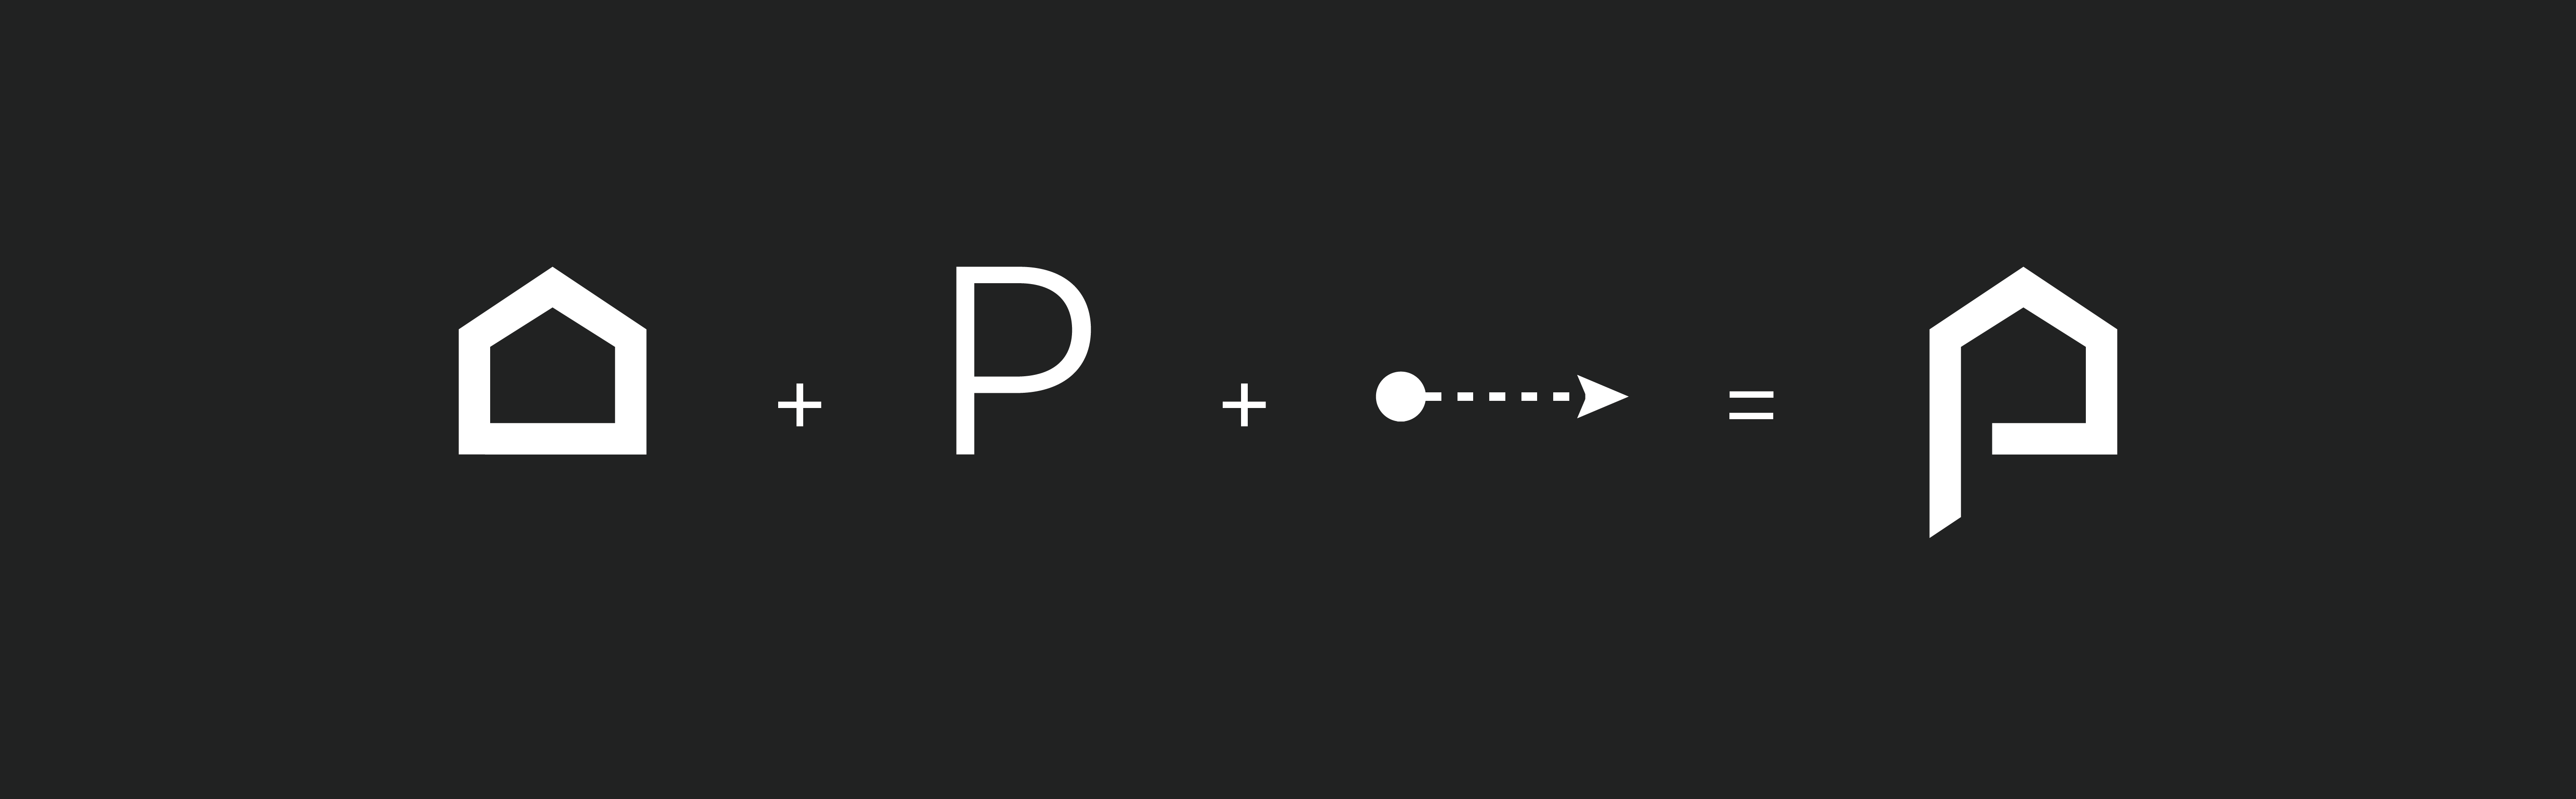 Logo pitzus before and after copia@3x